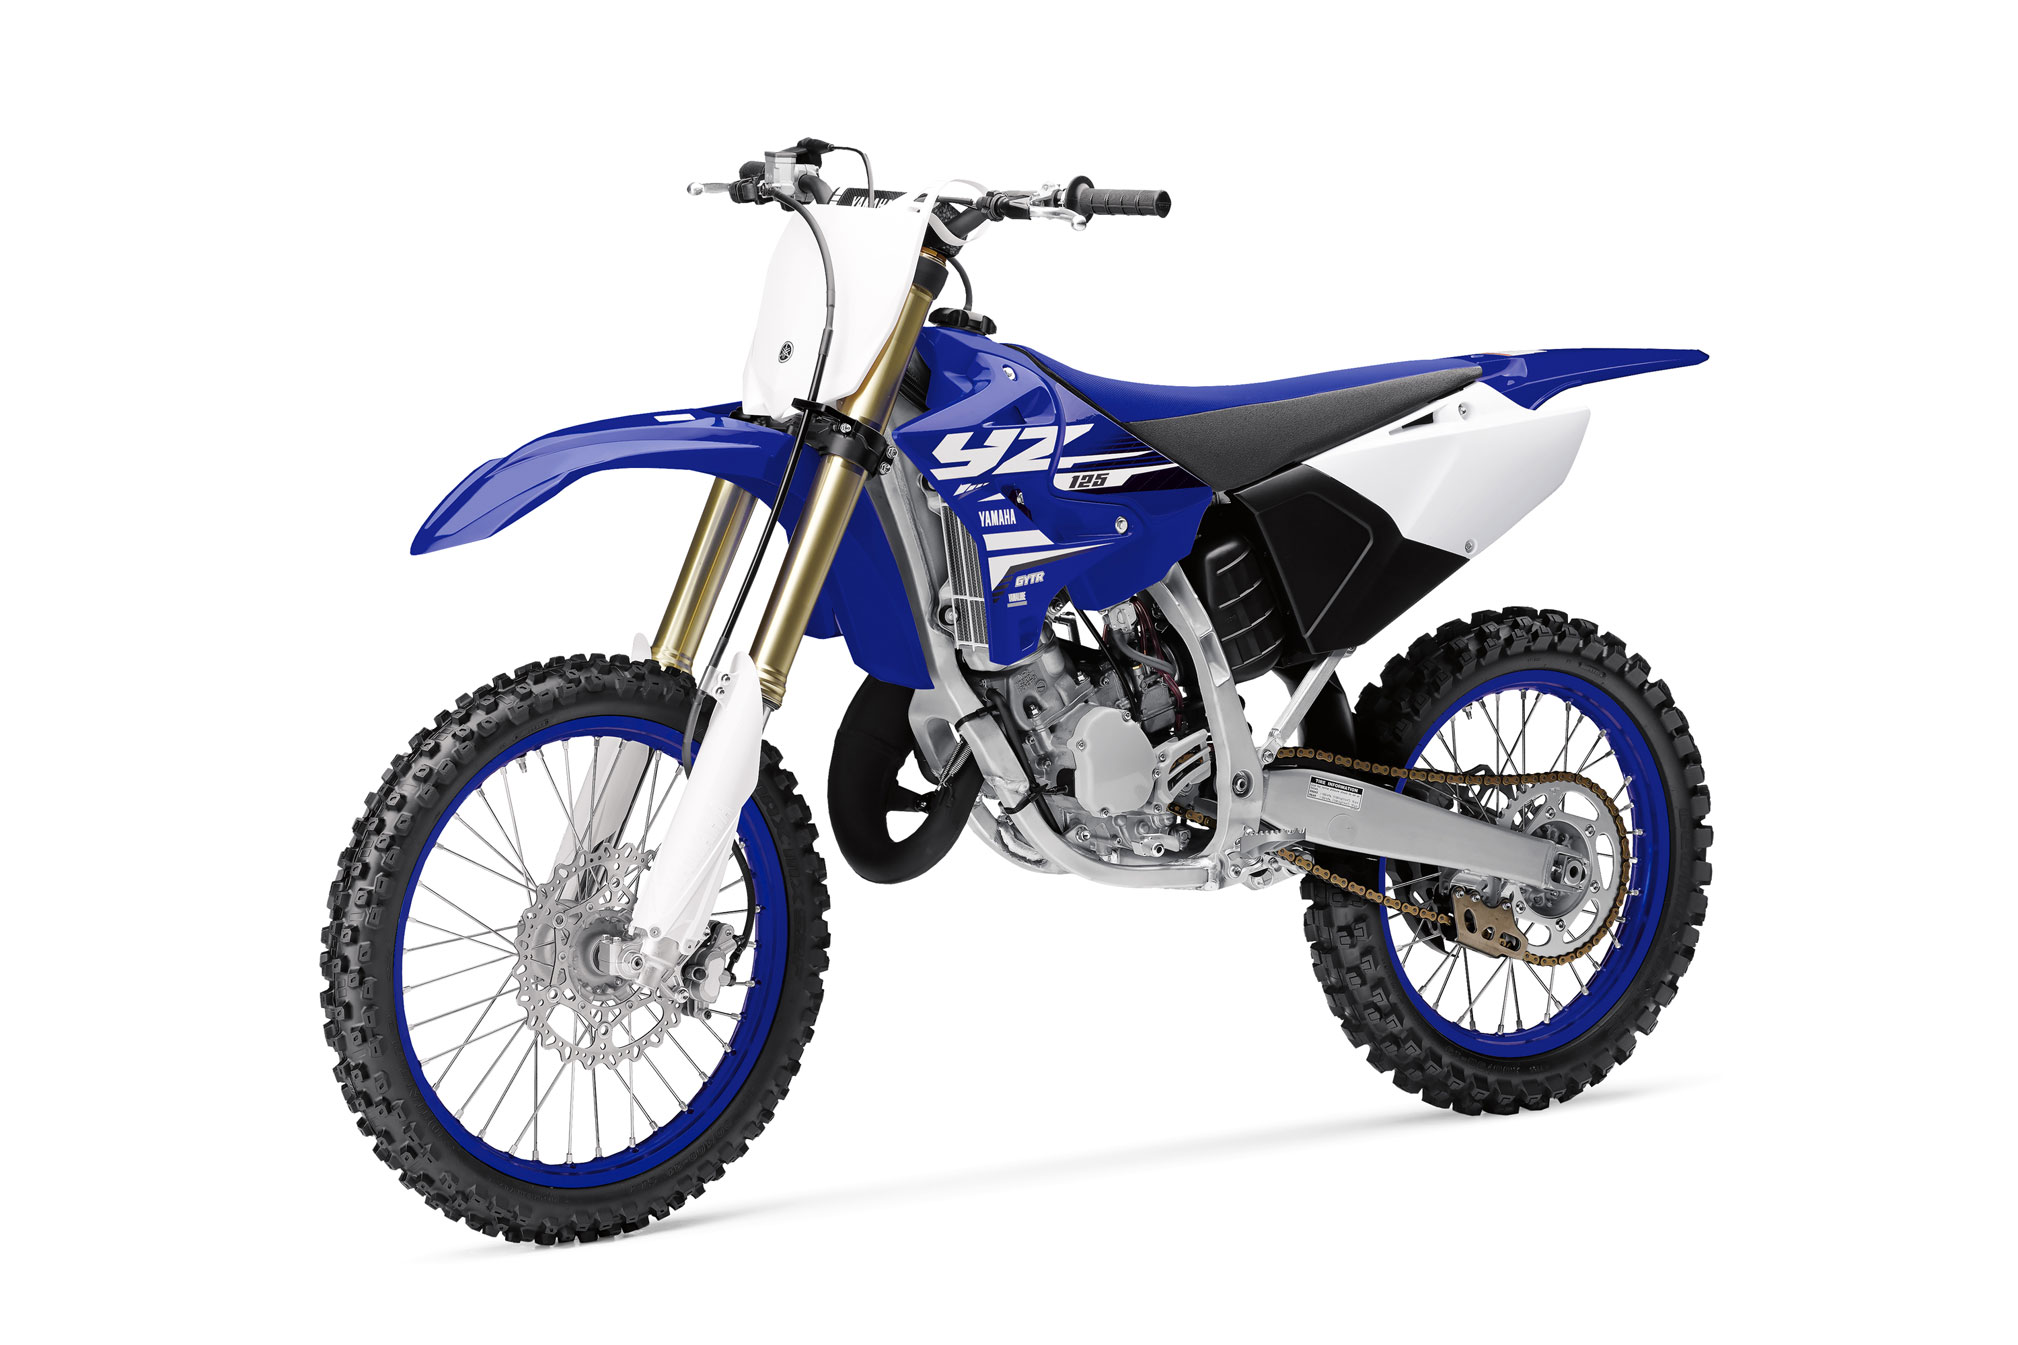 2018 yamaha yz125 review total motorcycle. Black Bedroom Furniture Sets. Home Design Ideas